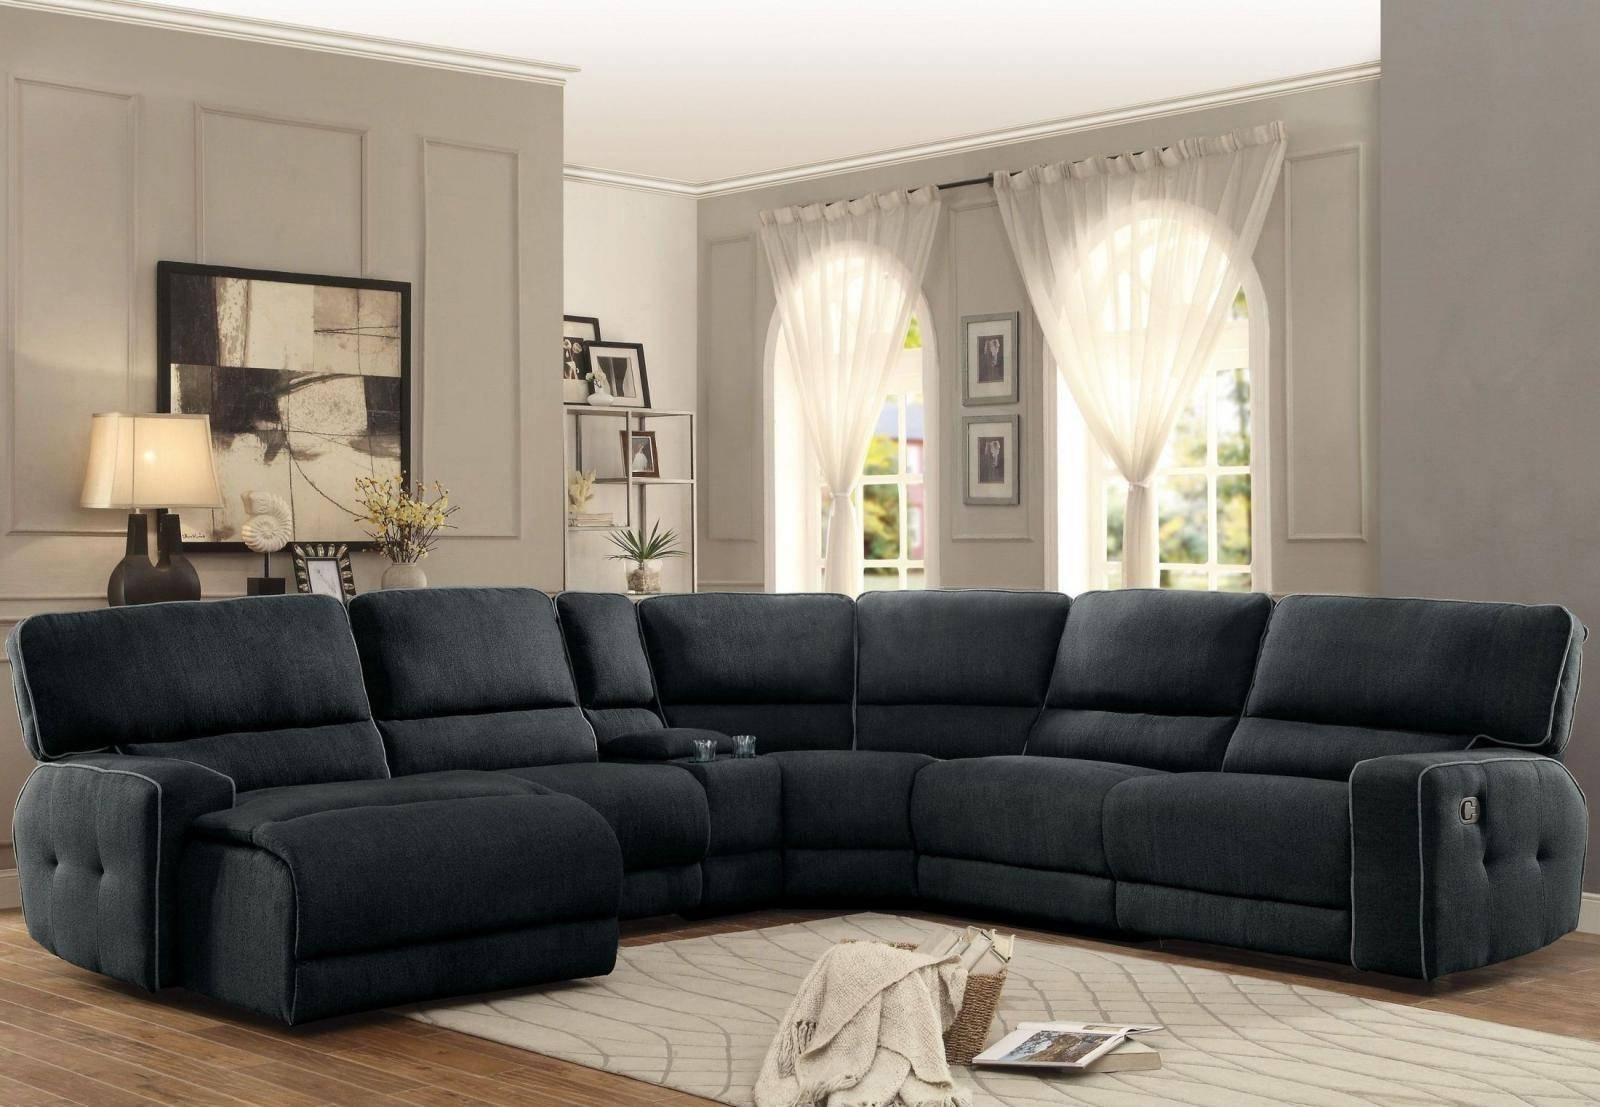 Amazing Homelegance 8336 Keamey Dark Grey Fabric Reclining Sectional Pdpeps Interior Chair Design Pdpepsorg